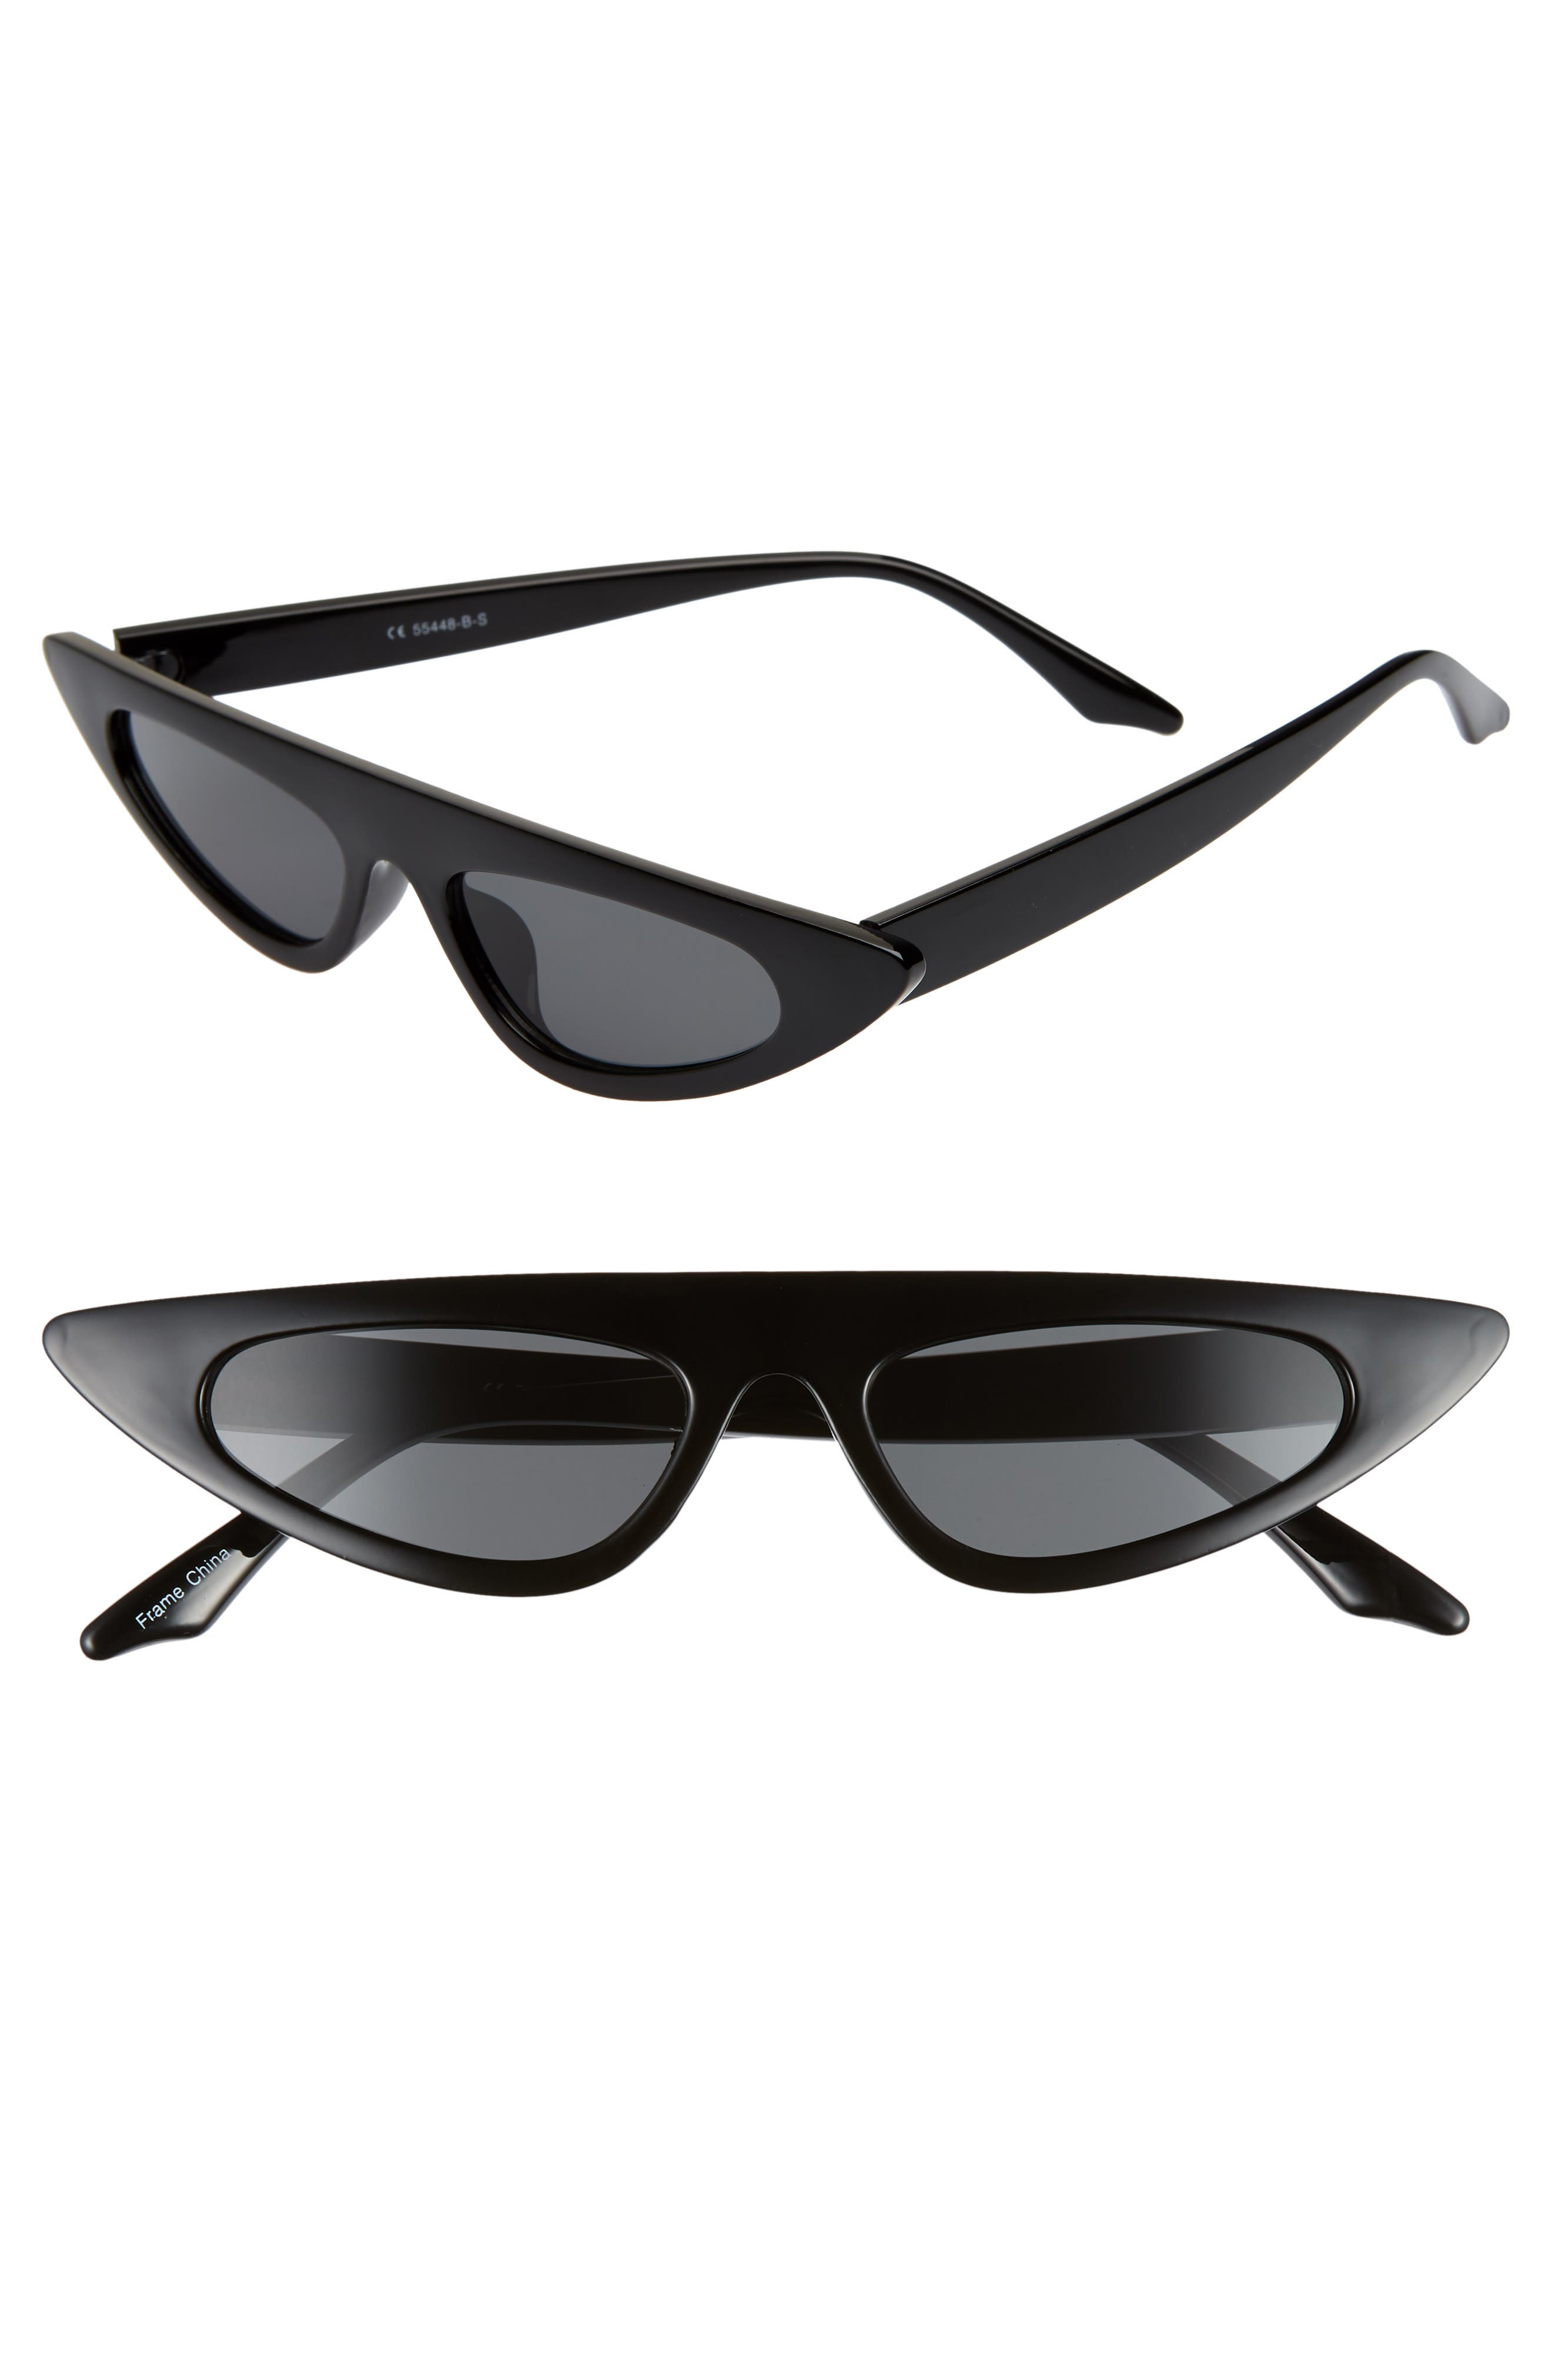 50mm Flat Top Cat Eye Sunglasses,                         Main,                         color, BLACK